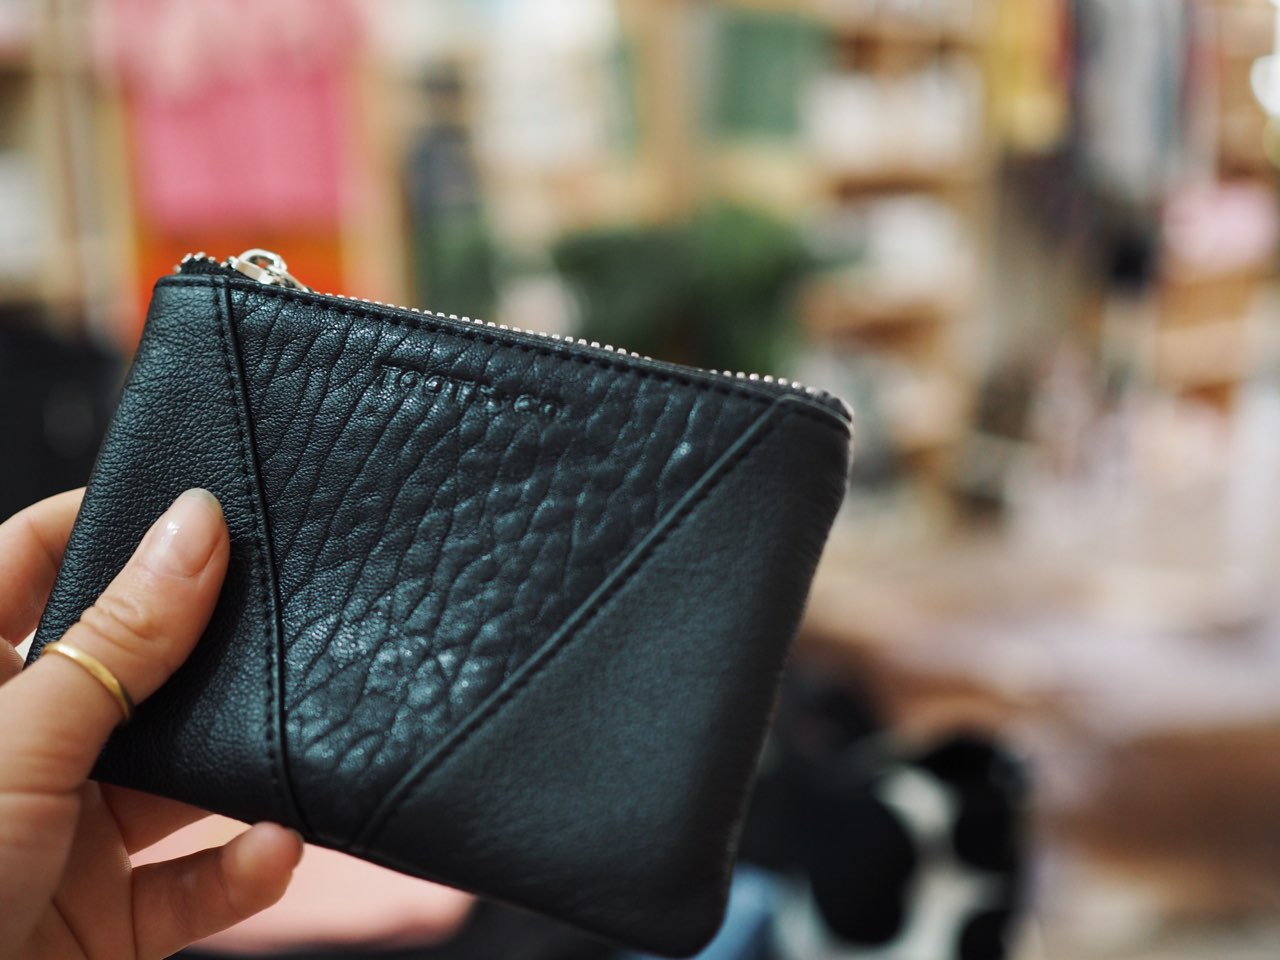 SET The Ultimate Cross Body / Family Travel Wallet + Perfect Coin Purse - Matt Black Full Grain Leather